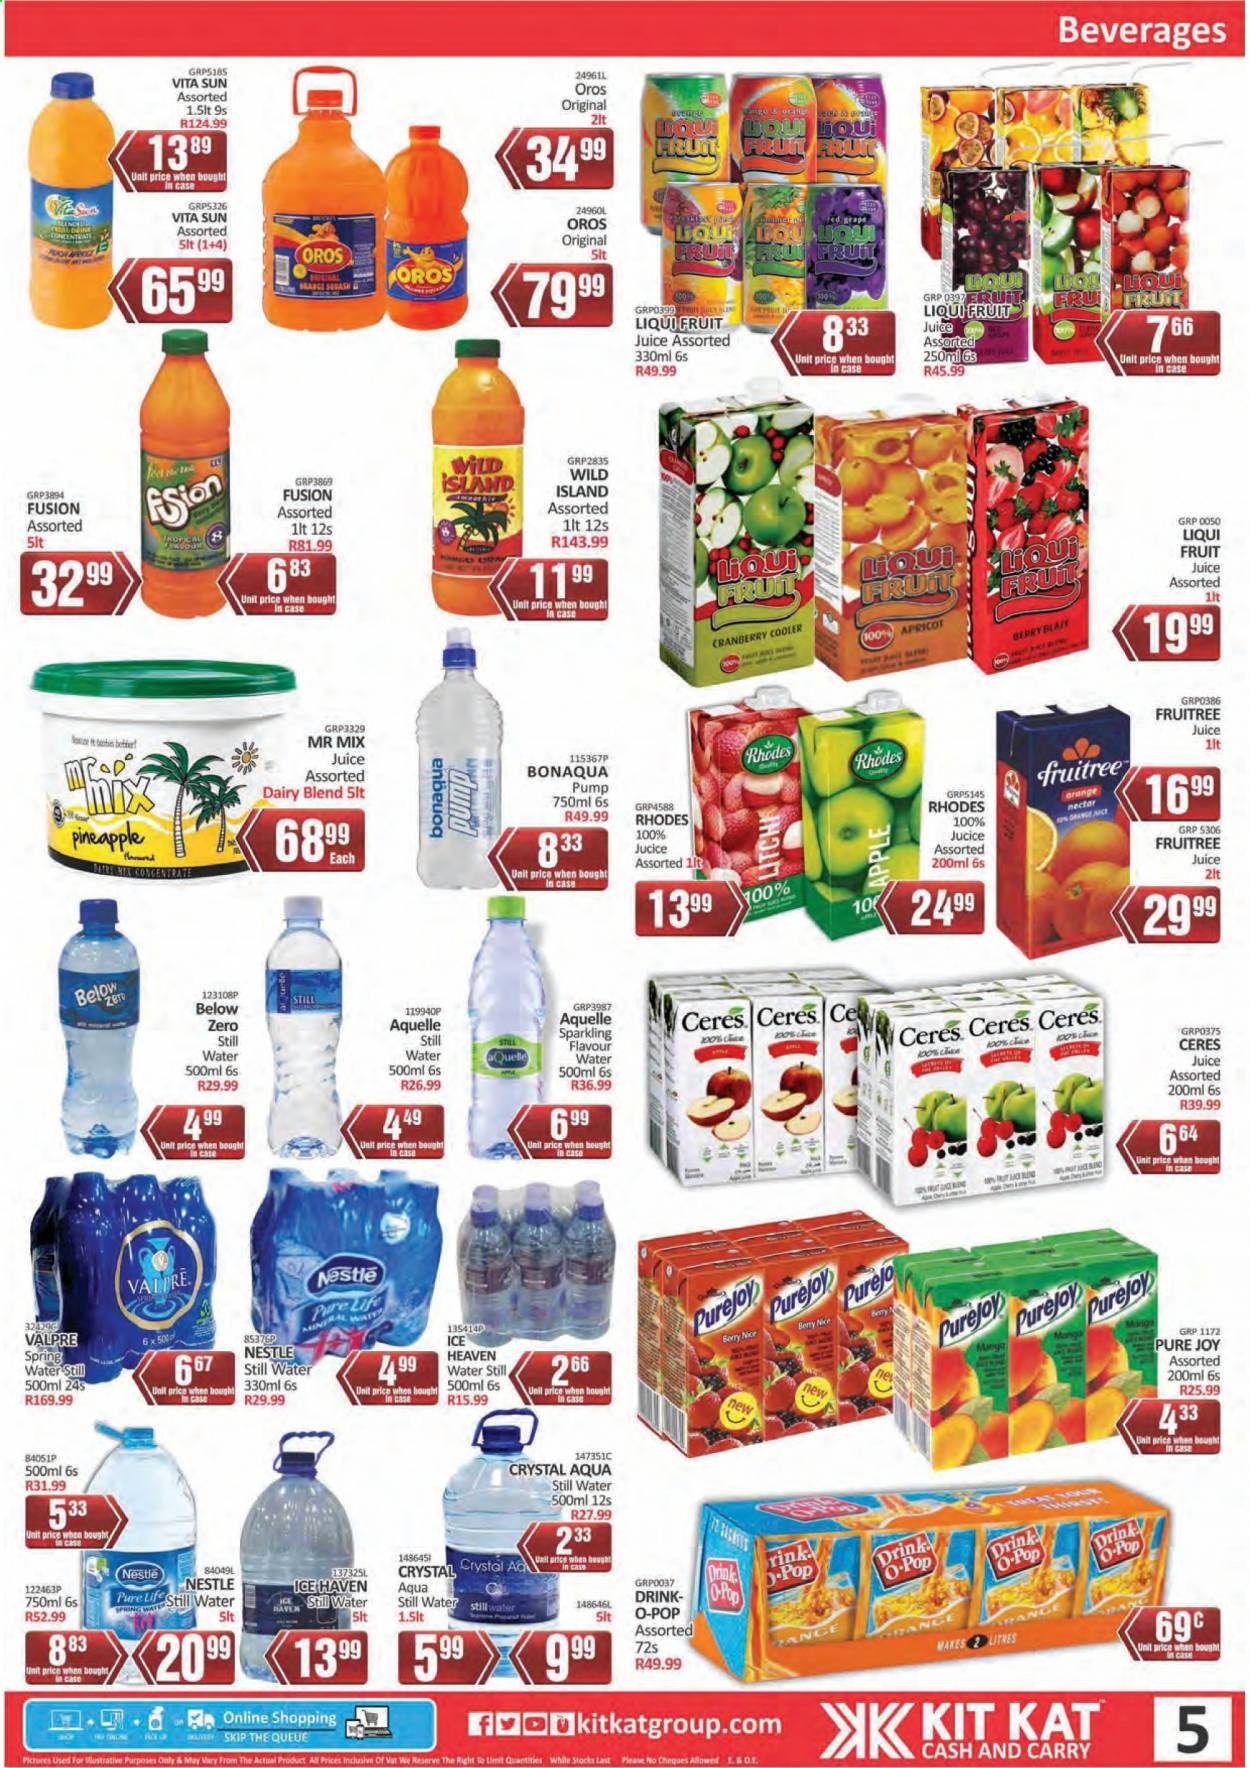 Kit Kat Cash & Carry catalogue  - 02.11.2021 - 05.12.2021. Page 5.